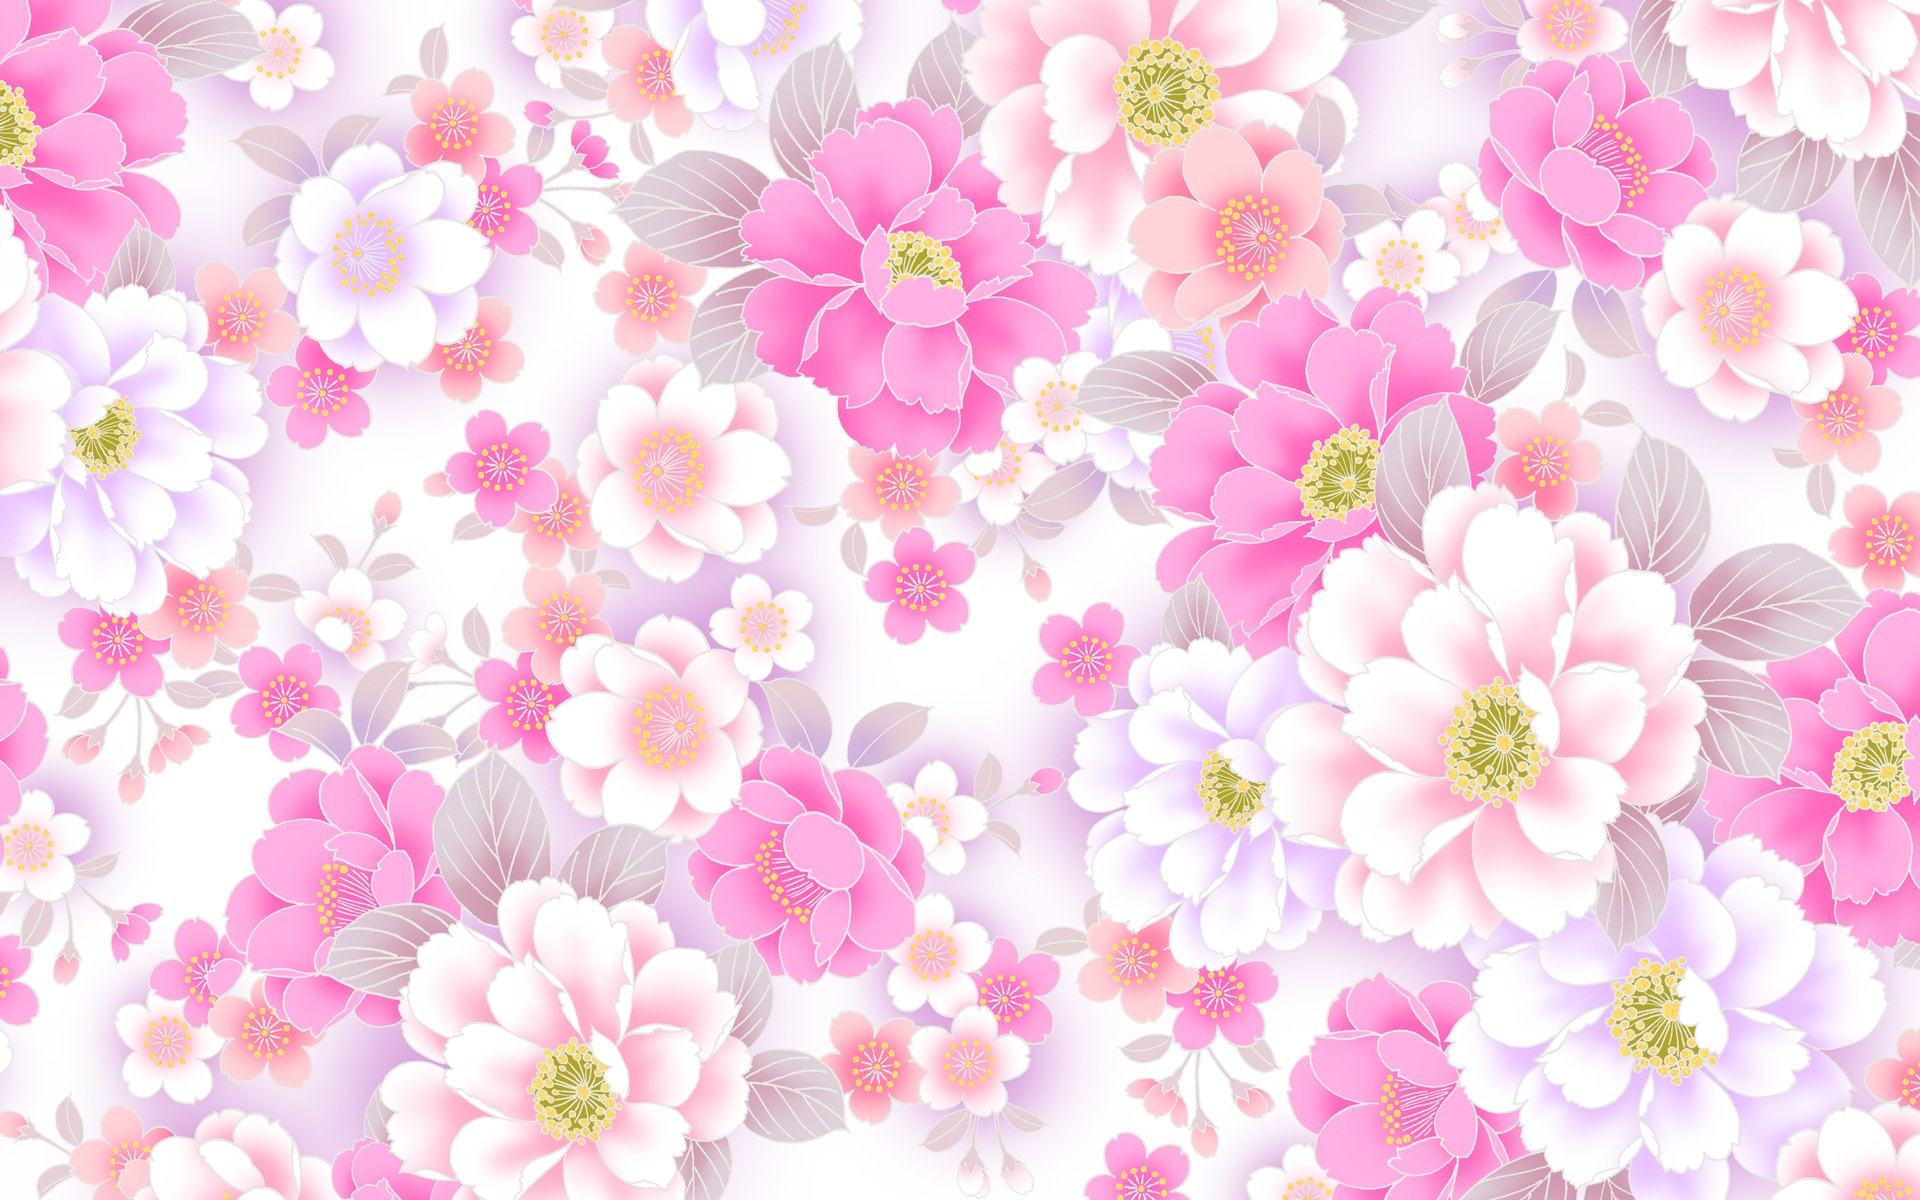 Pink flower wallpaper designs